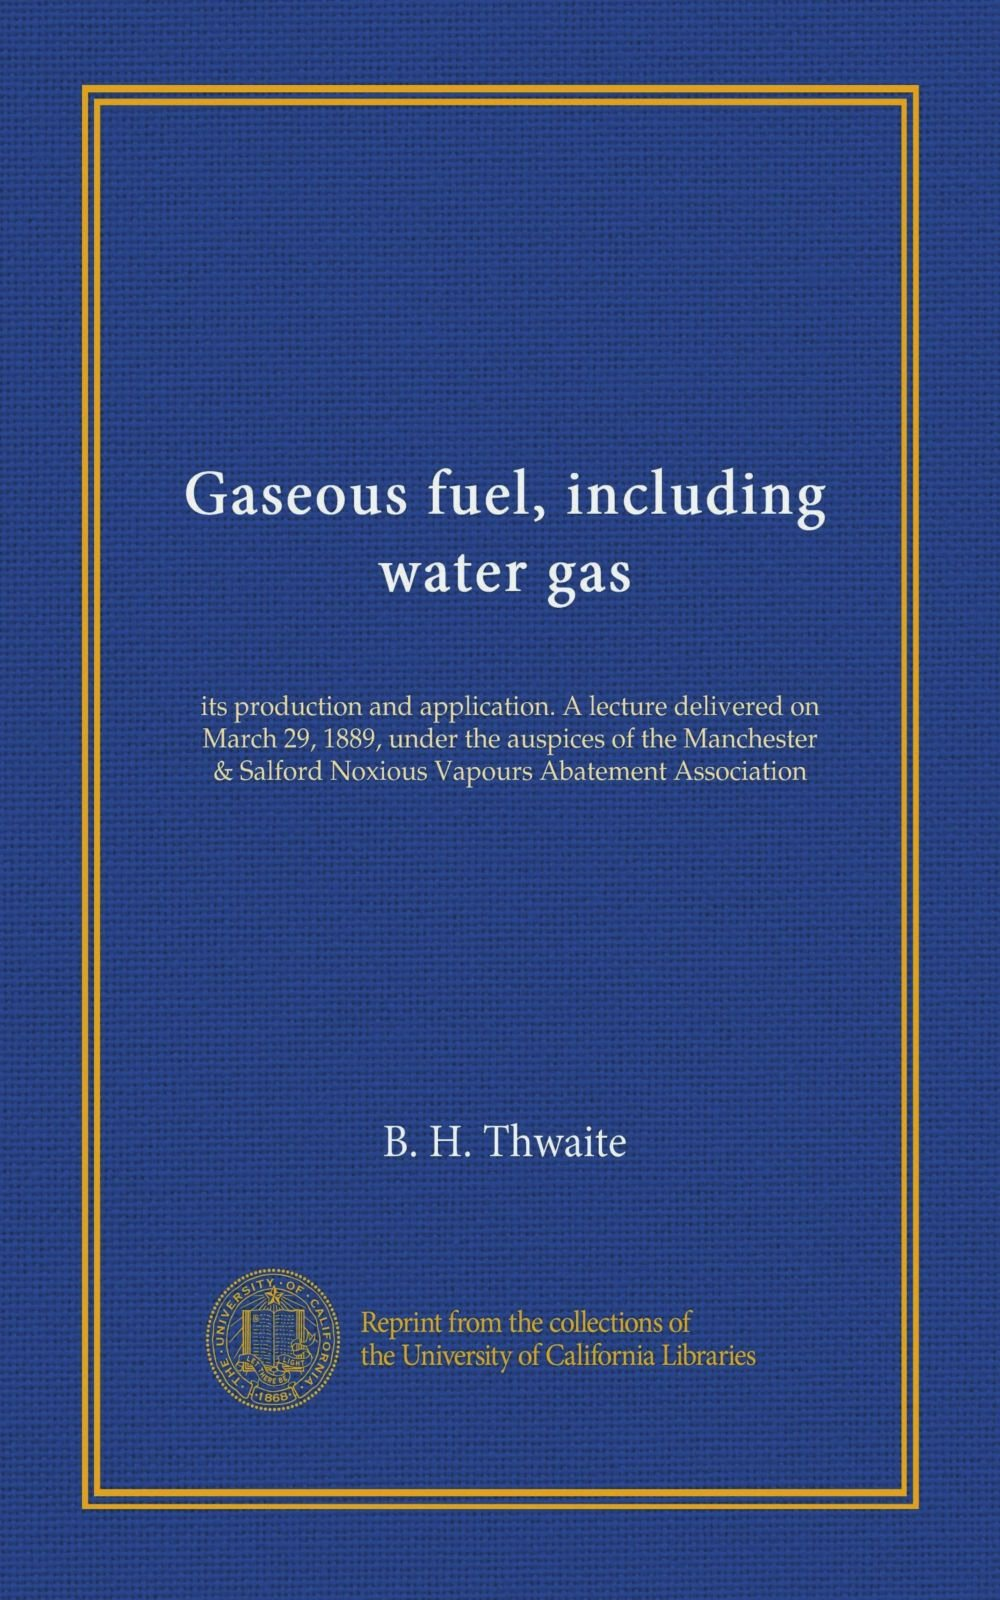 Gaseous fuel, including water gas: its production and application. A lecture delivered on March 29, 1889, under the auspices of the Manchester & Salford Noxious Vapours Abatement Association ebook